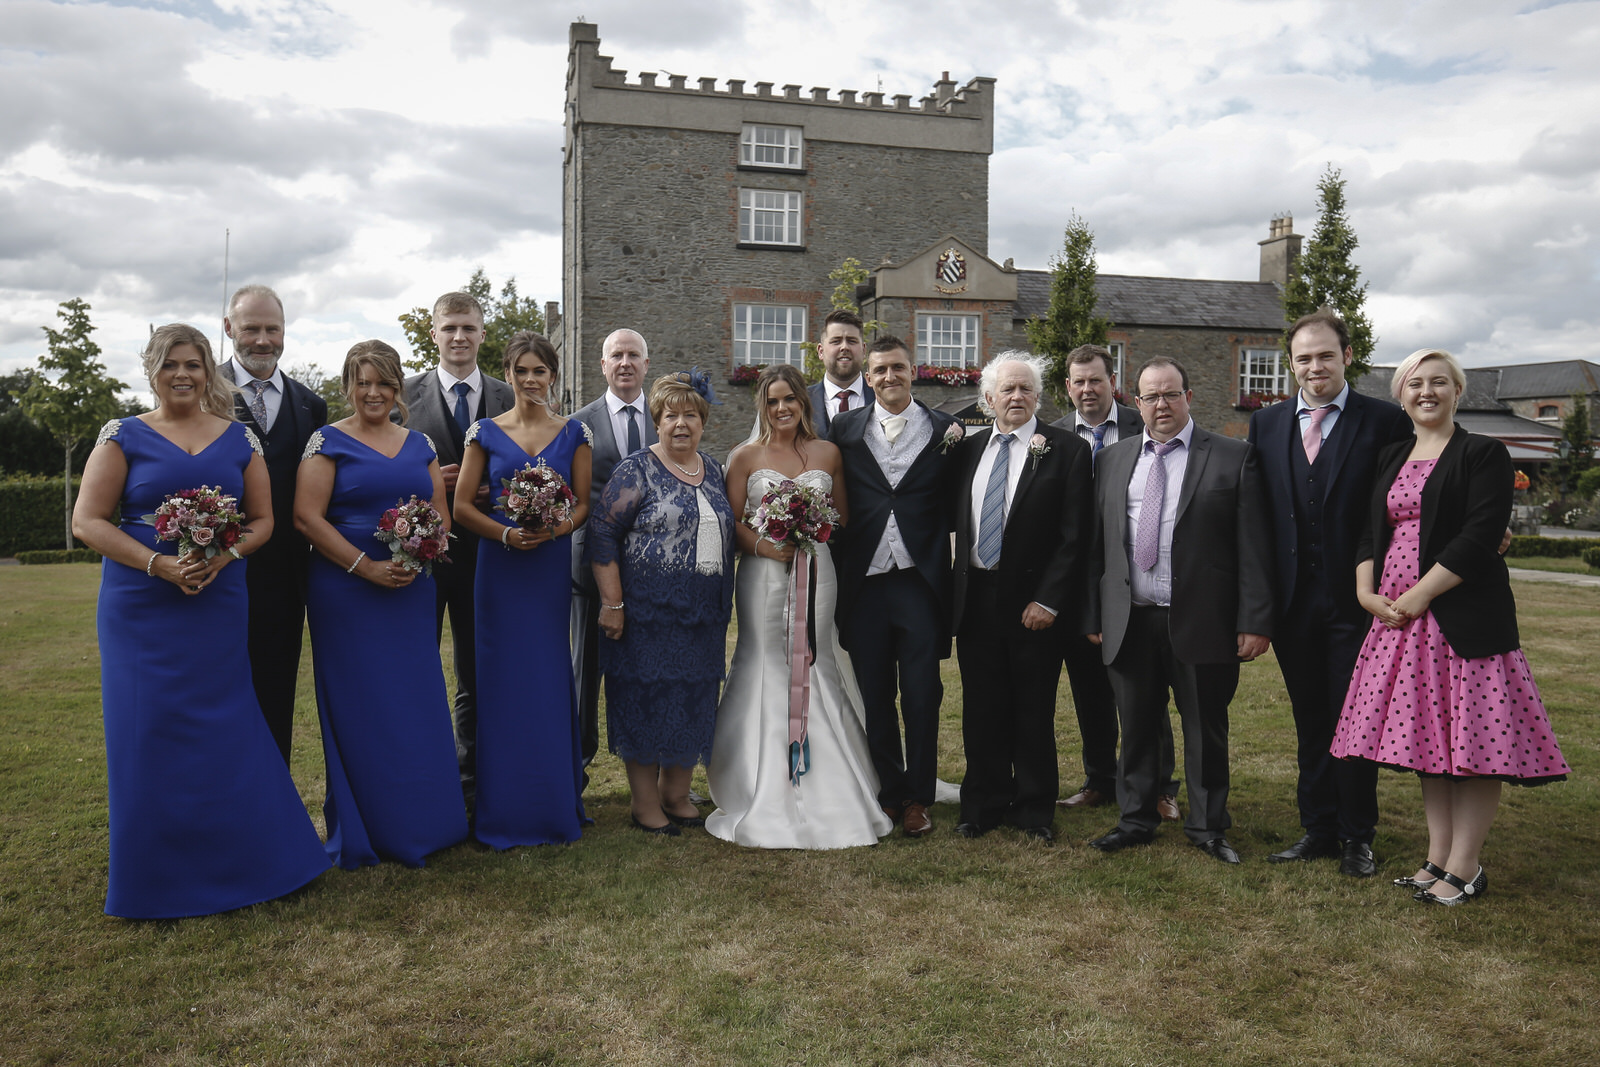 darver_castle_wedding_photographer_goldenmonentsweddingphotography_a258.jpg